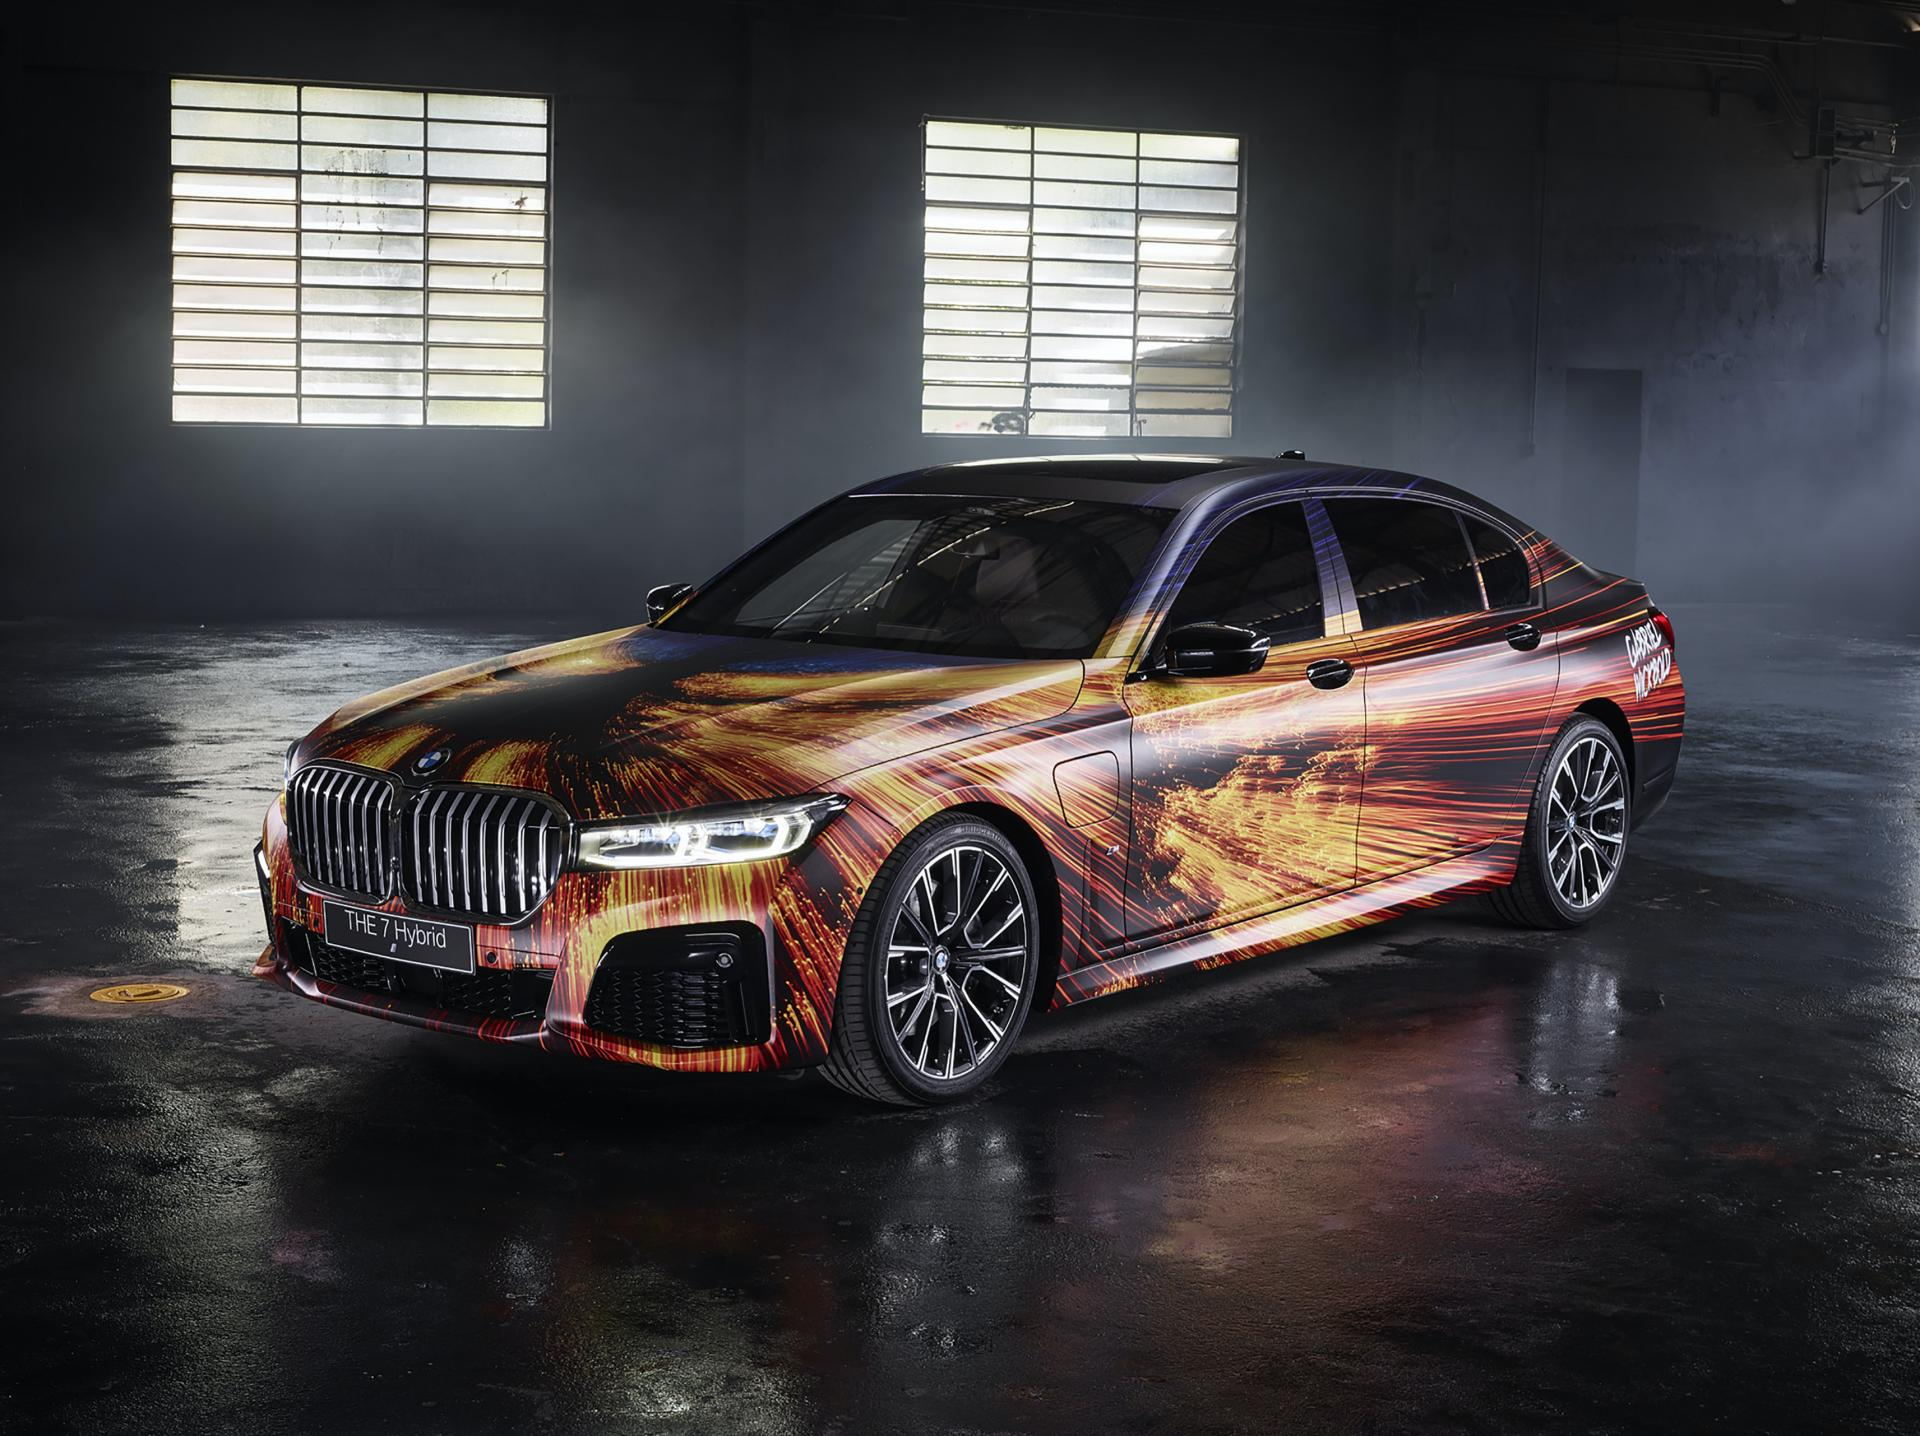 BMW-7-Series-745Le-M-Sport-Gabriel-Wickbold-Car-Art-10